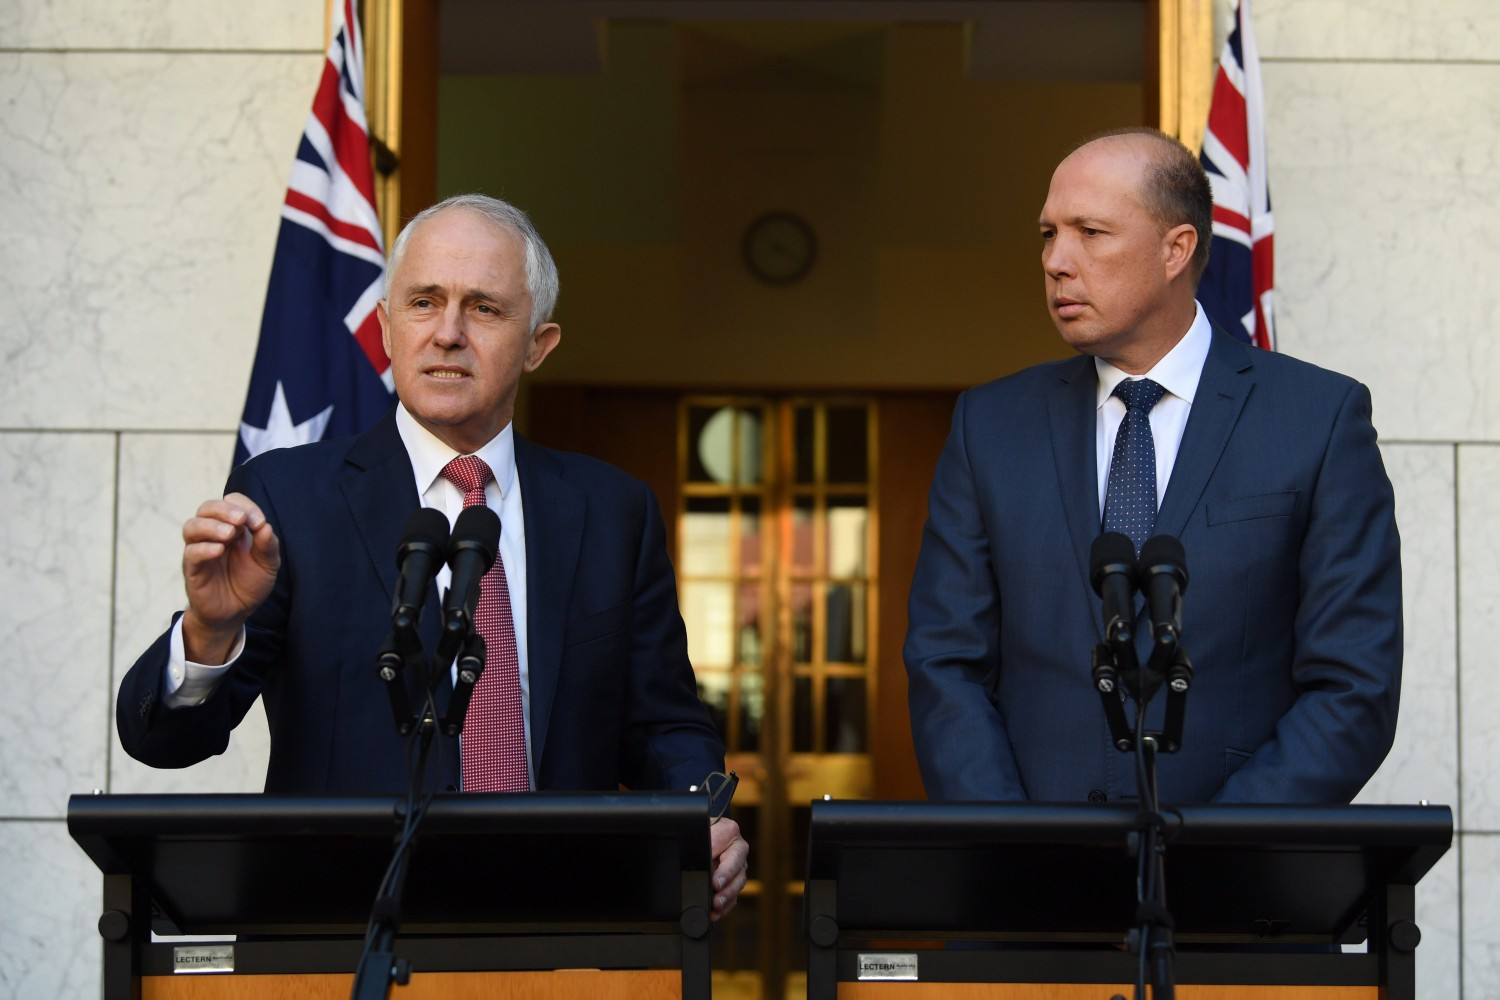 PM Turnbull Reveals Immigration Shake-Up With Axing Of 457 Visas